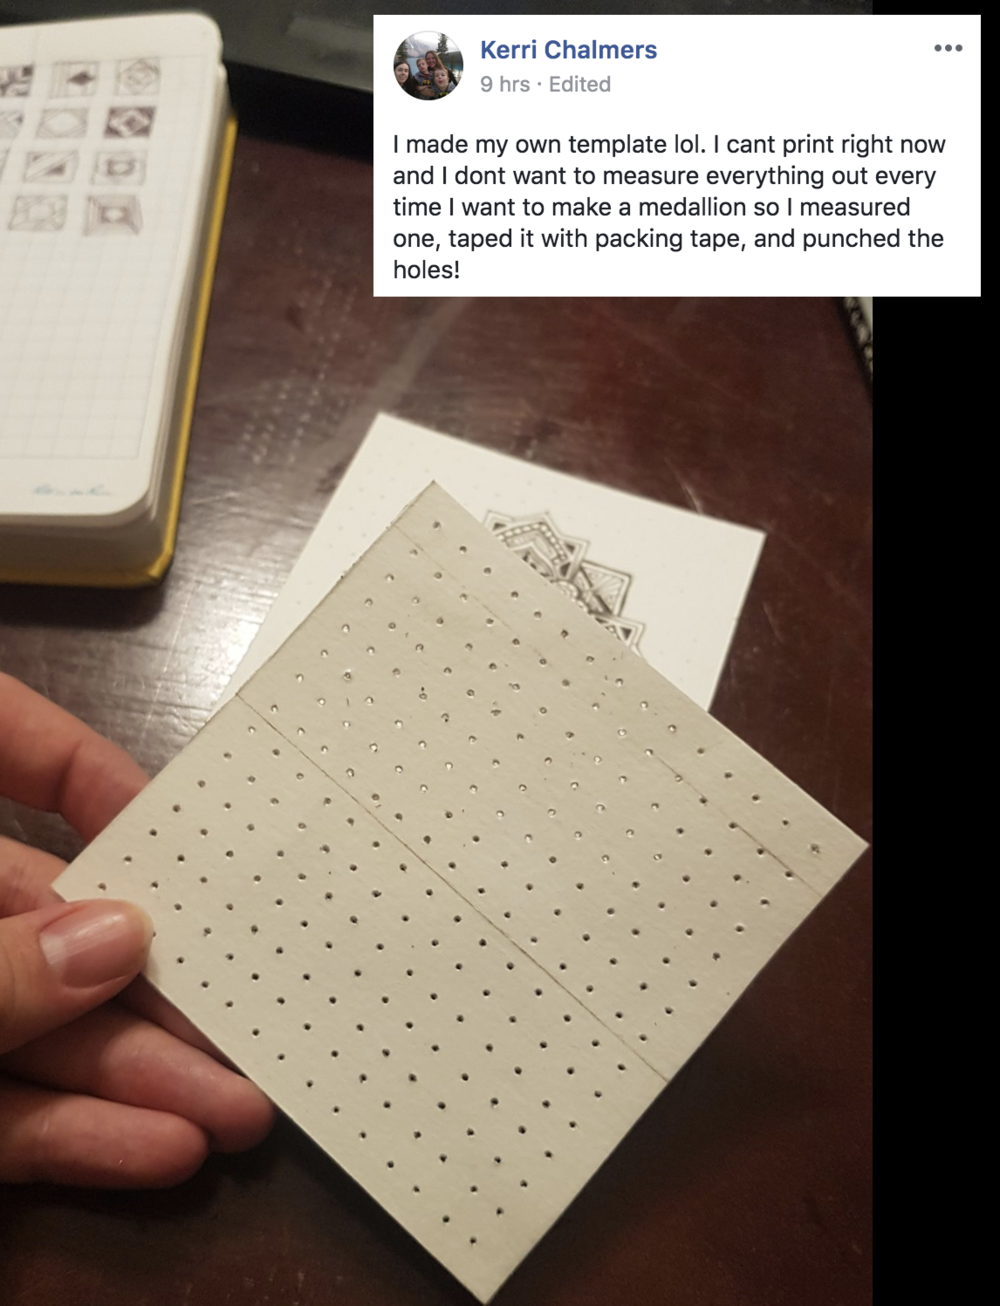 Tip: Make your own template! - If you can't print your dotted paper over cardstock, then use this really neat idea by Kerri. Mark your own dots on cardstock, tape it with packing transparent tape to make it sturdier and then punch the holes with a thick needle. Brilliant, thank you Kerri!